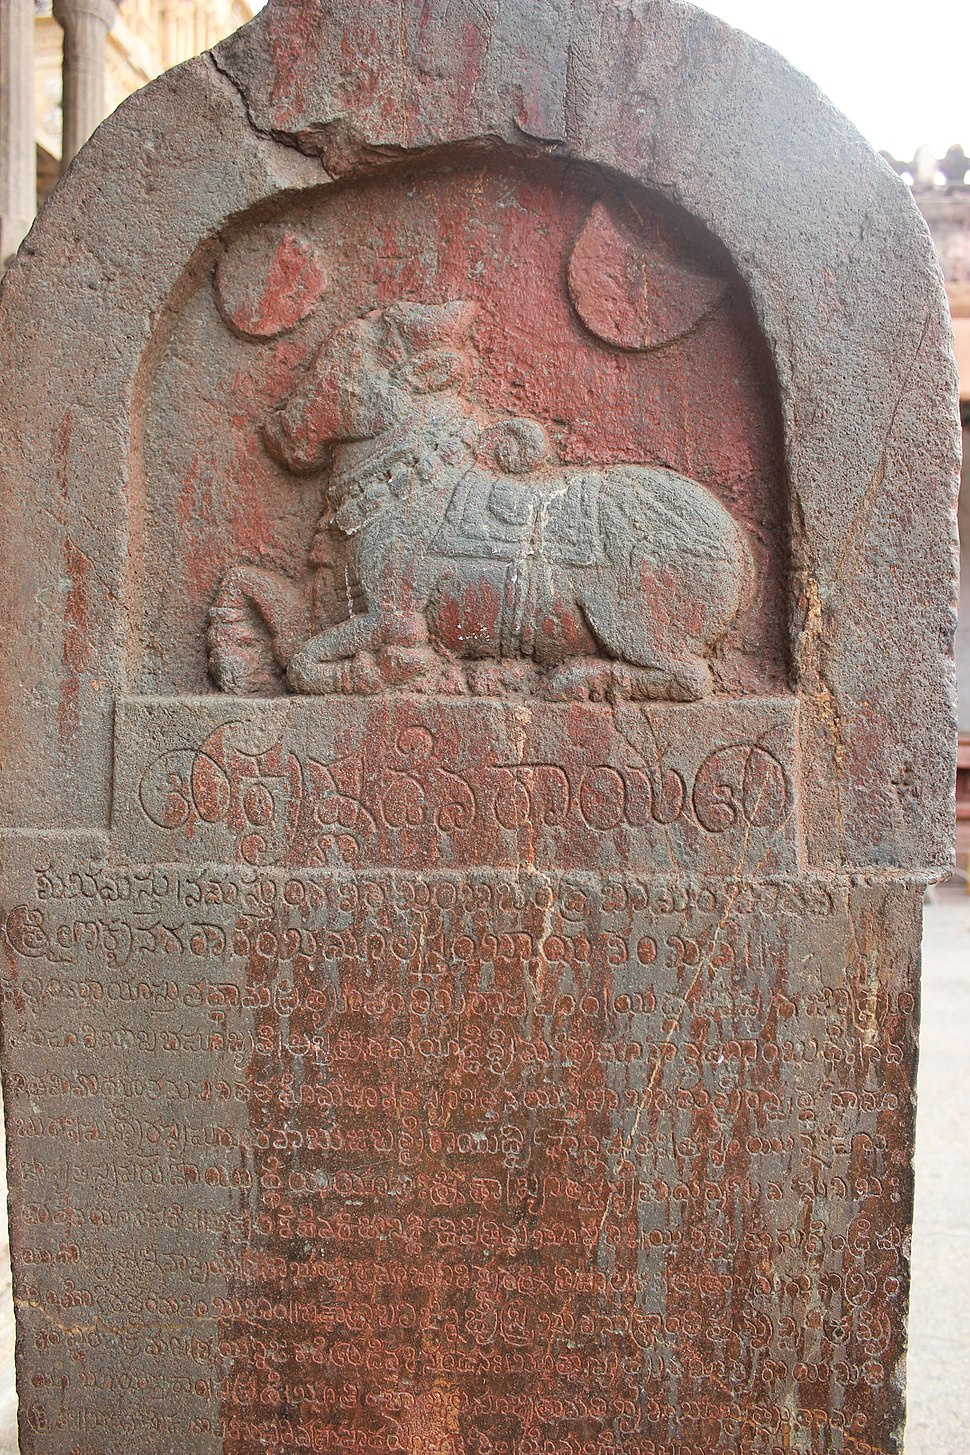 Kannada inscription (1509 AD) of Krishnadeva Raya at entrance to mantapa of Virupaksha temple in Hampi